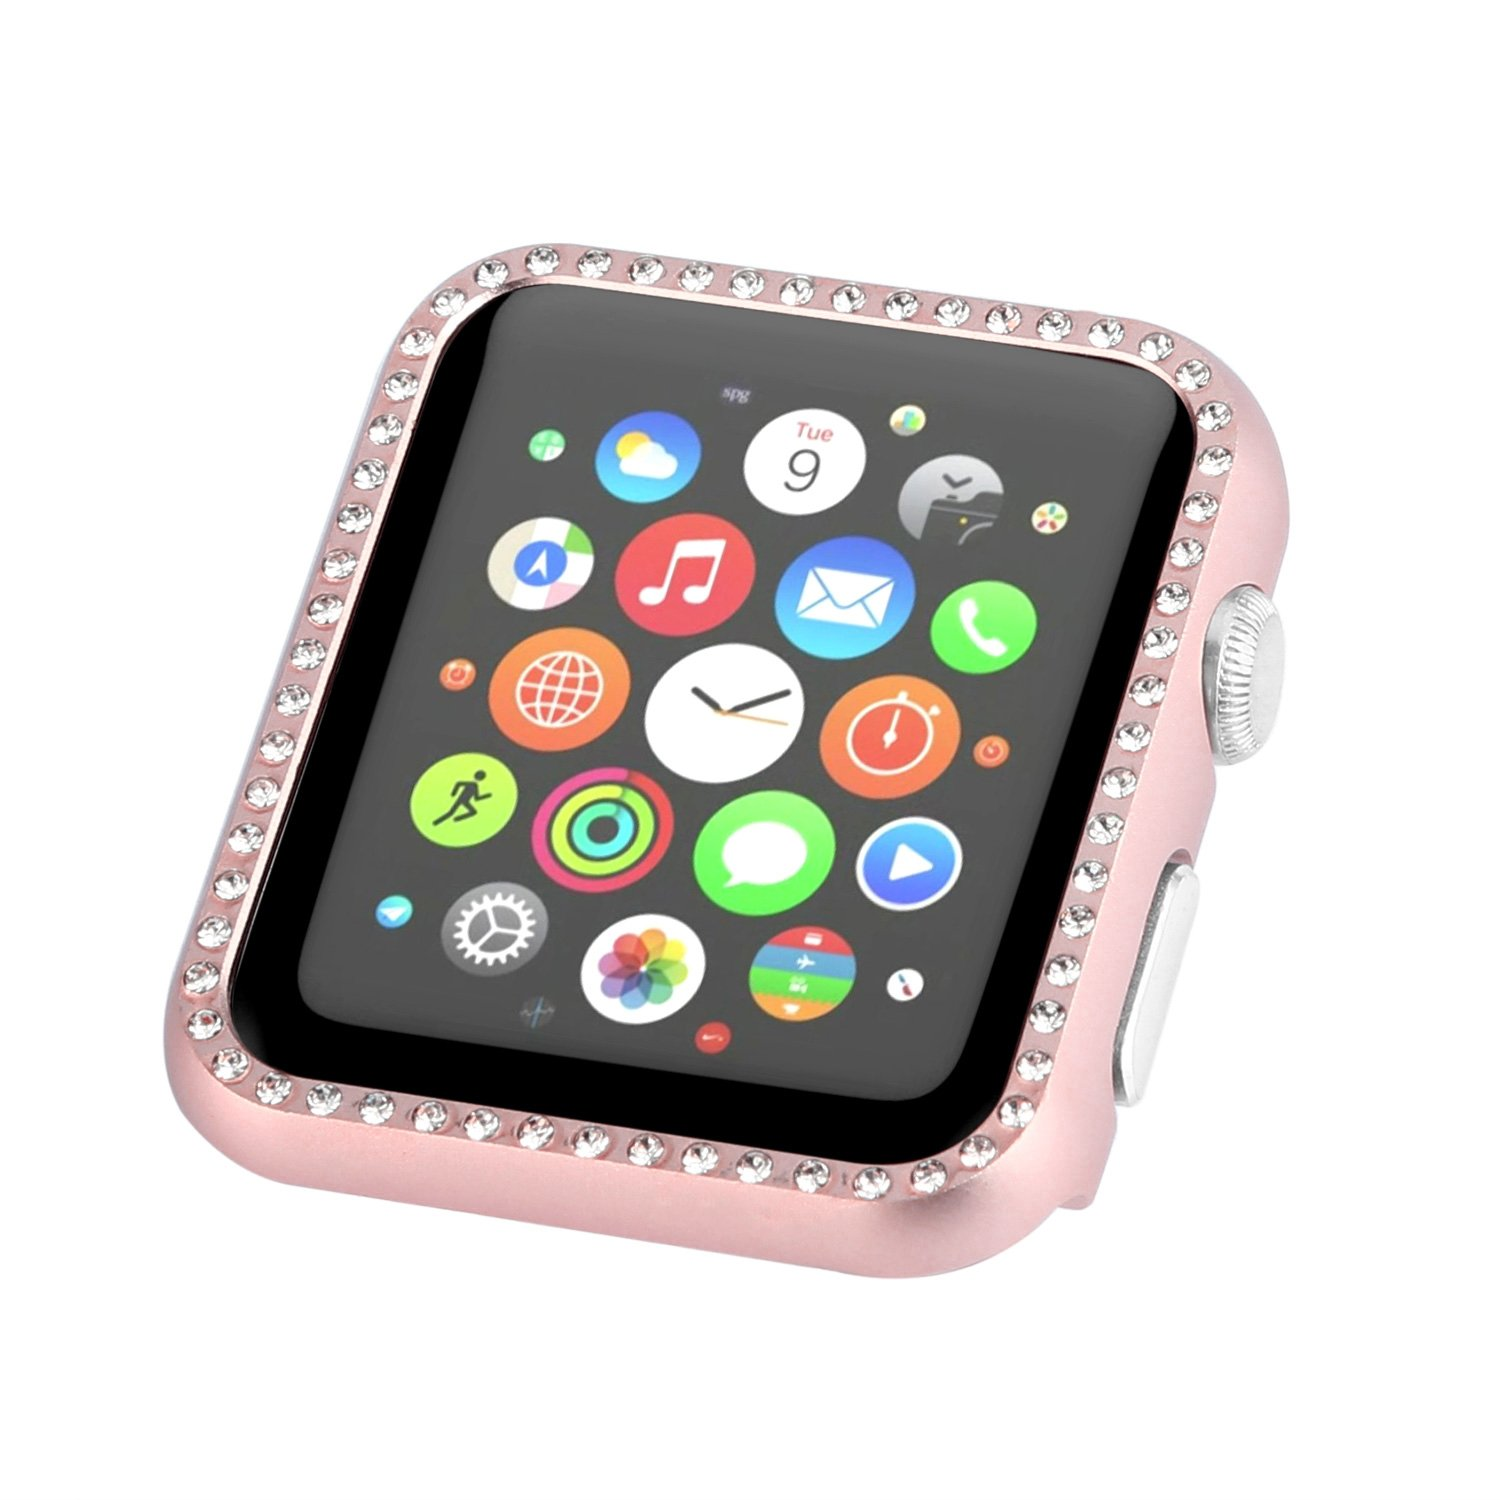 Apple Watch Bumper 42mm, iWatch Crystal Rhinestone Diamond Aluminum Case Shell Protective Frame Cover for 42mm Apple Watch Series 3/2/1 - Rose Gold by Clatune (Image #4)